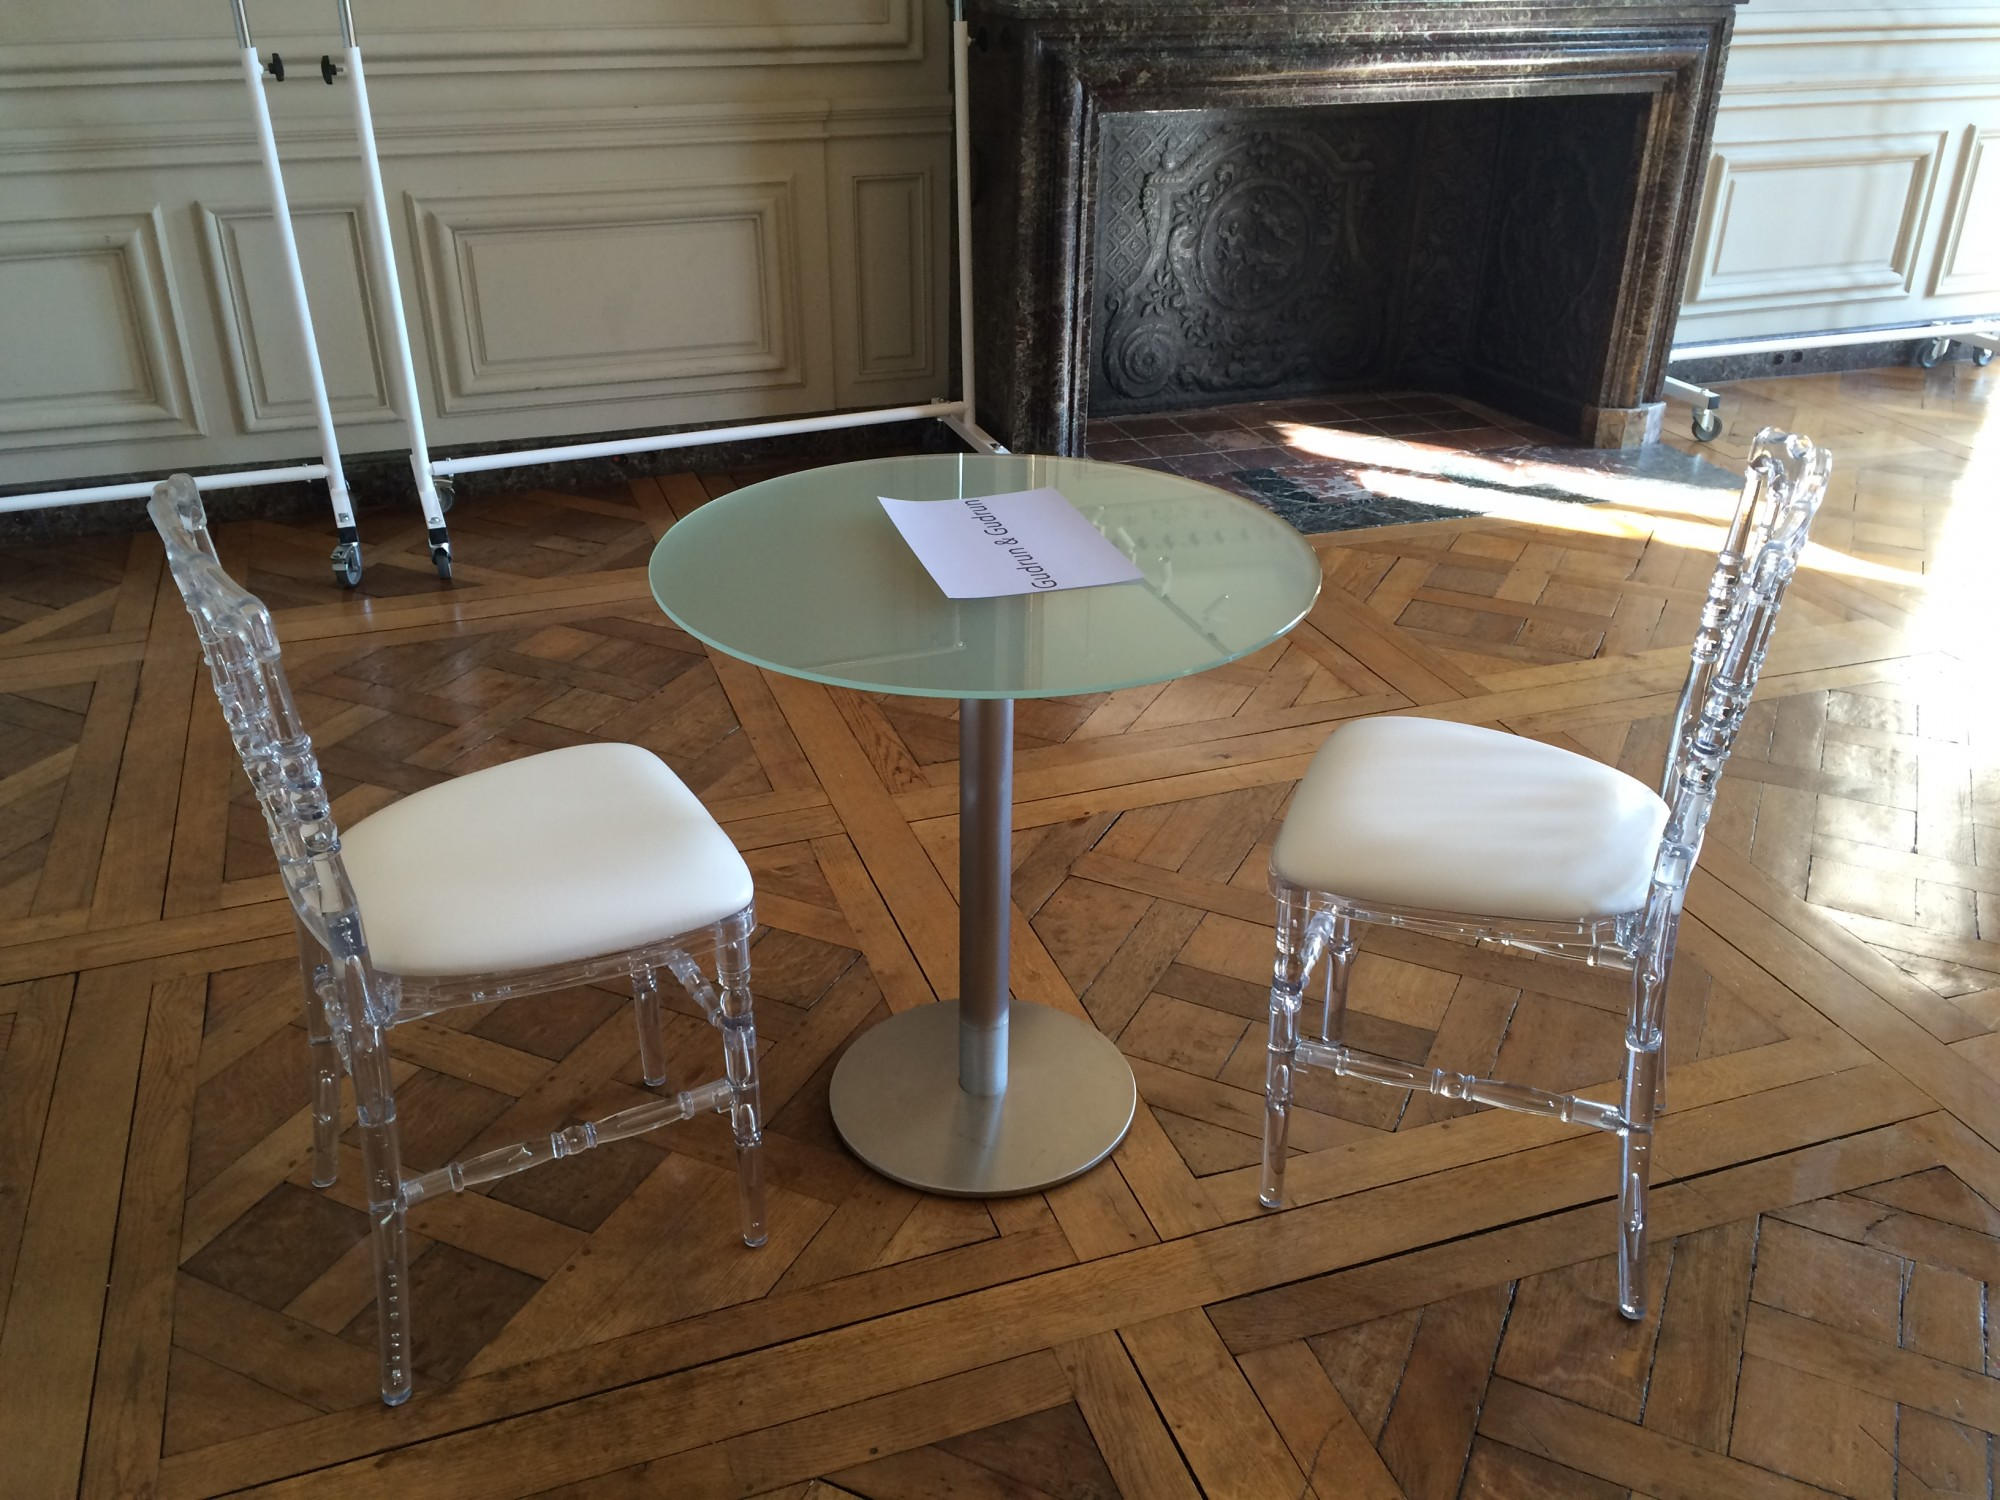 Location De Chaise Napol On Transparente Et De Table En Verre Location Mobilier De R Ception